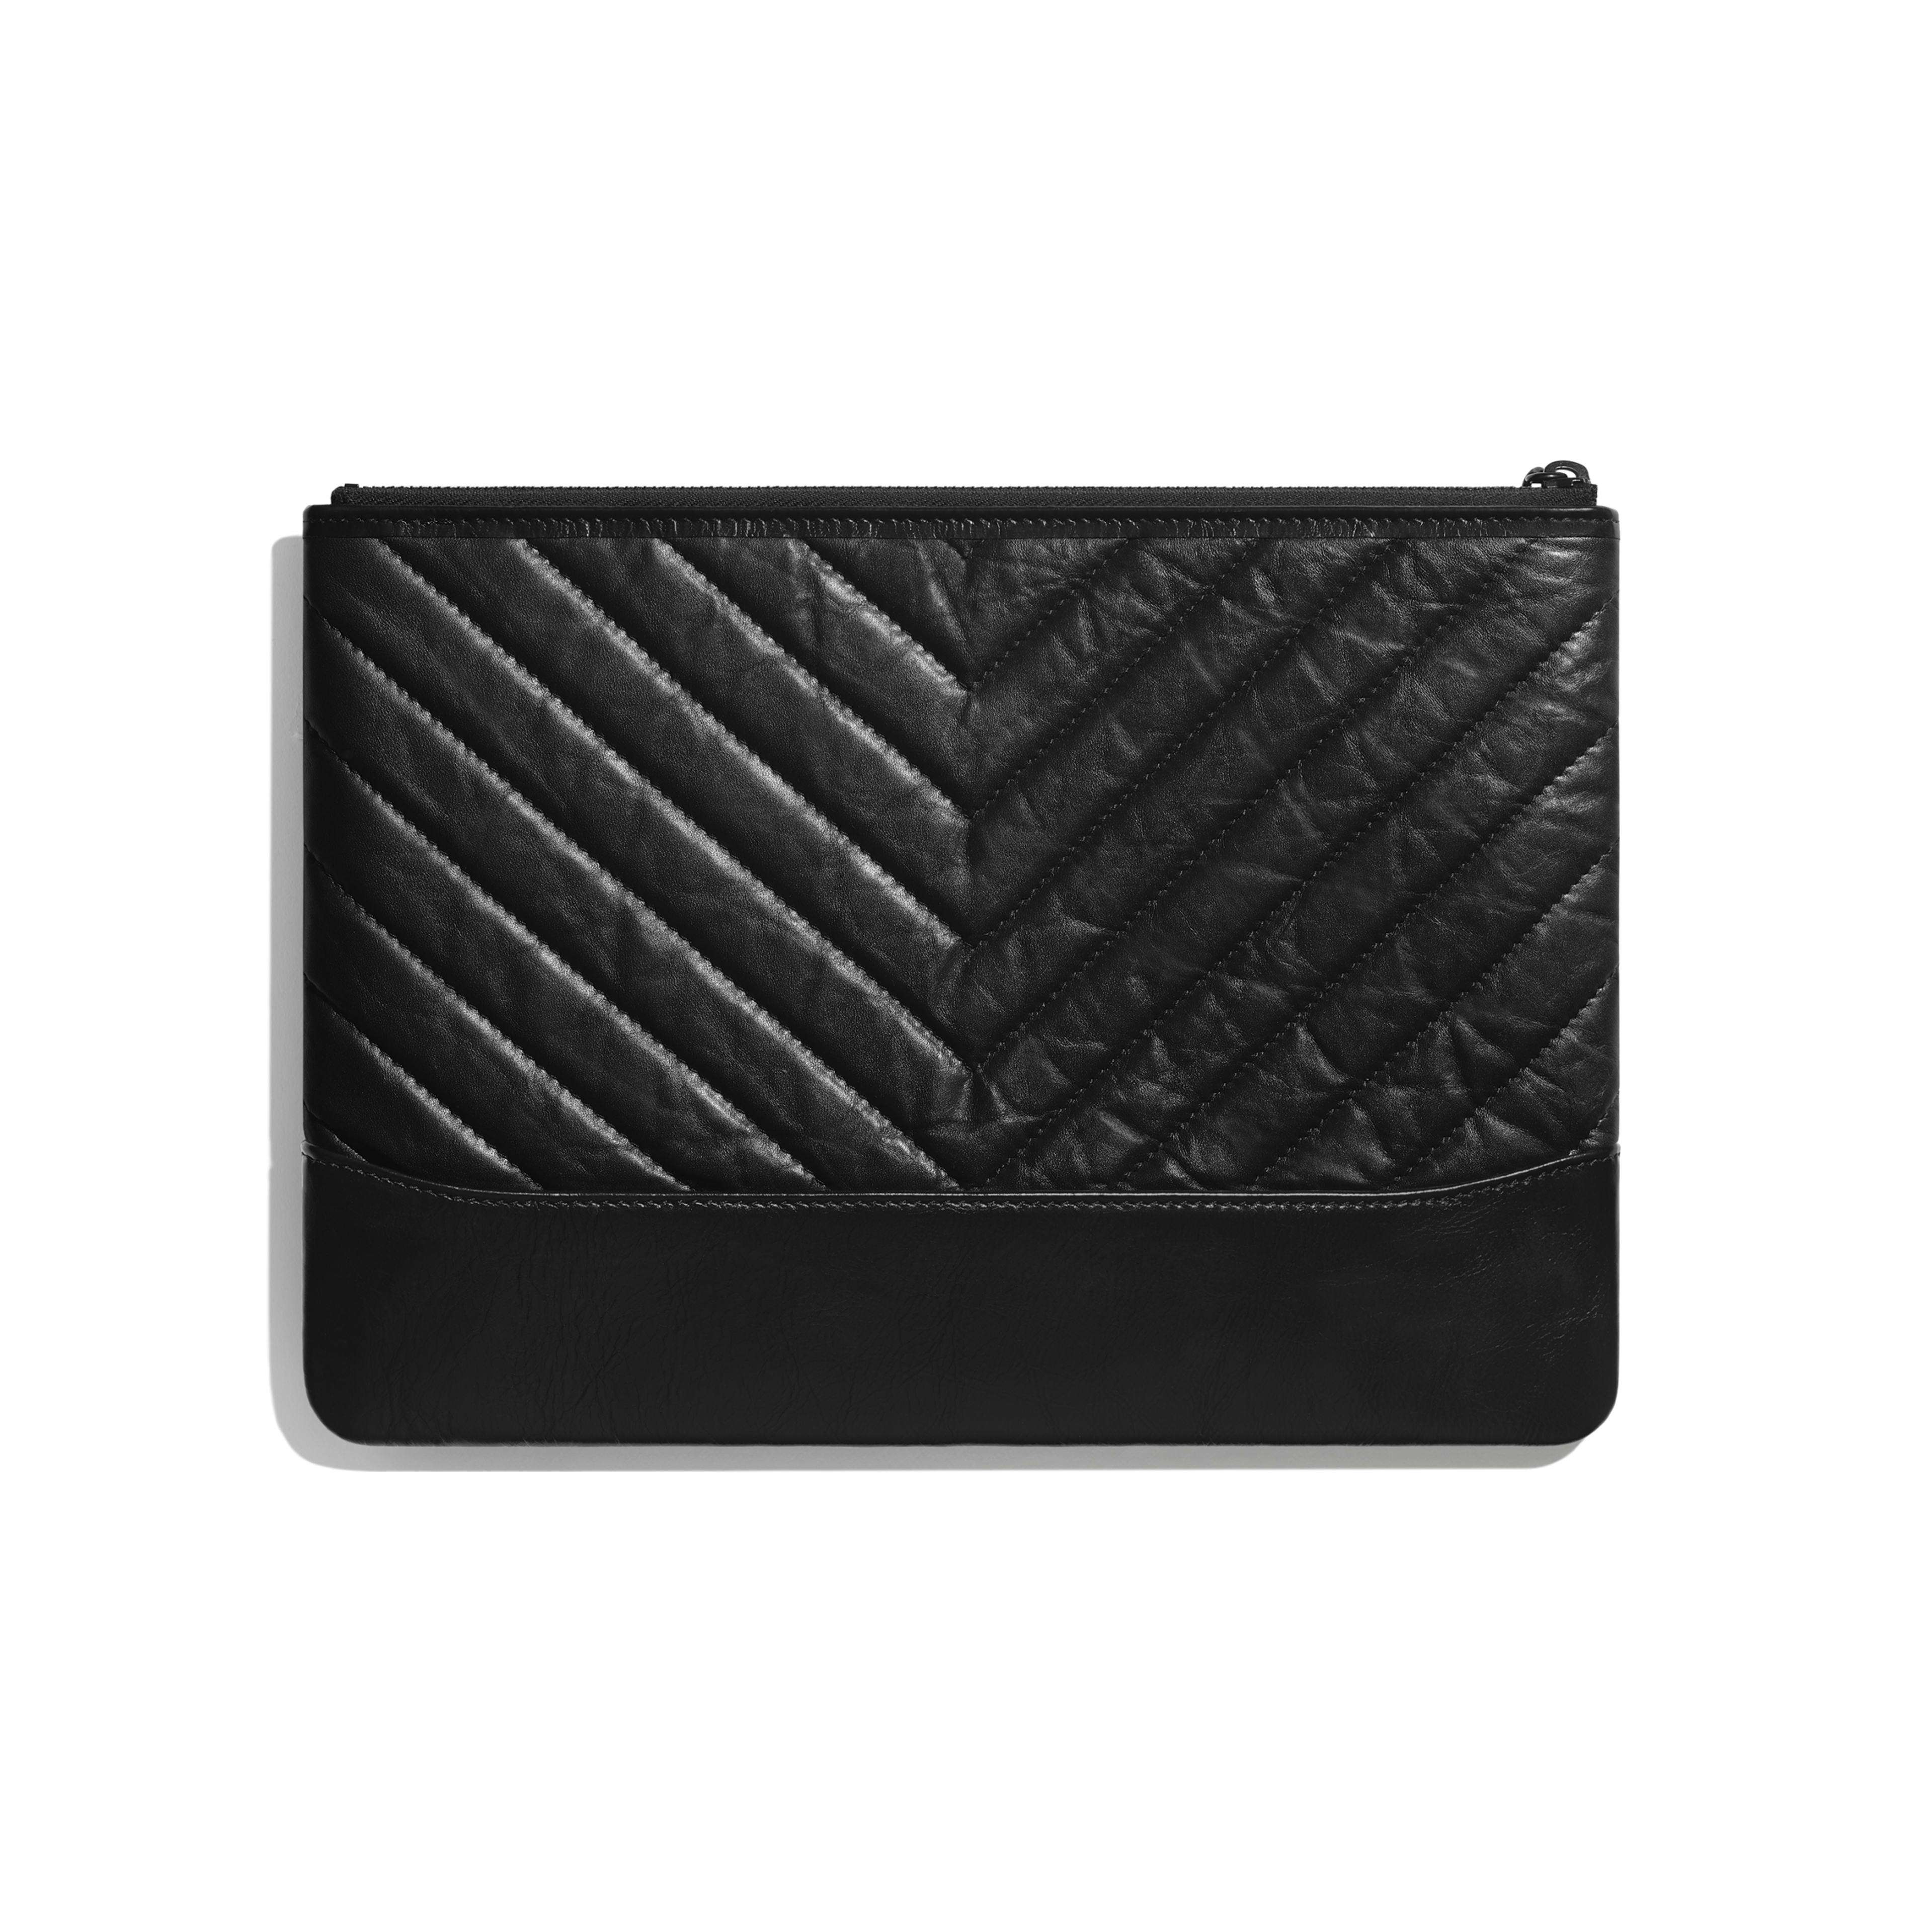 Pouch - Black - Aged Calfskin, Smooth Calfskin & Black Metal - Alternative view - see full sized version